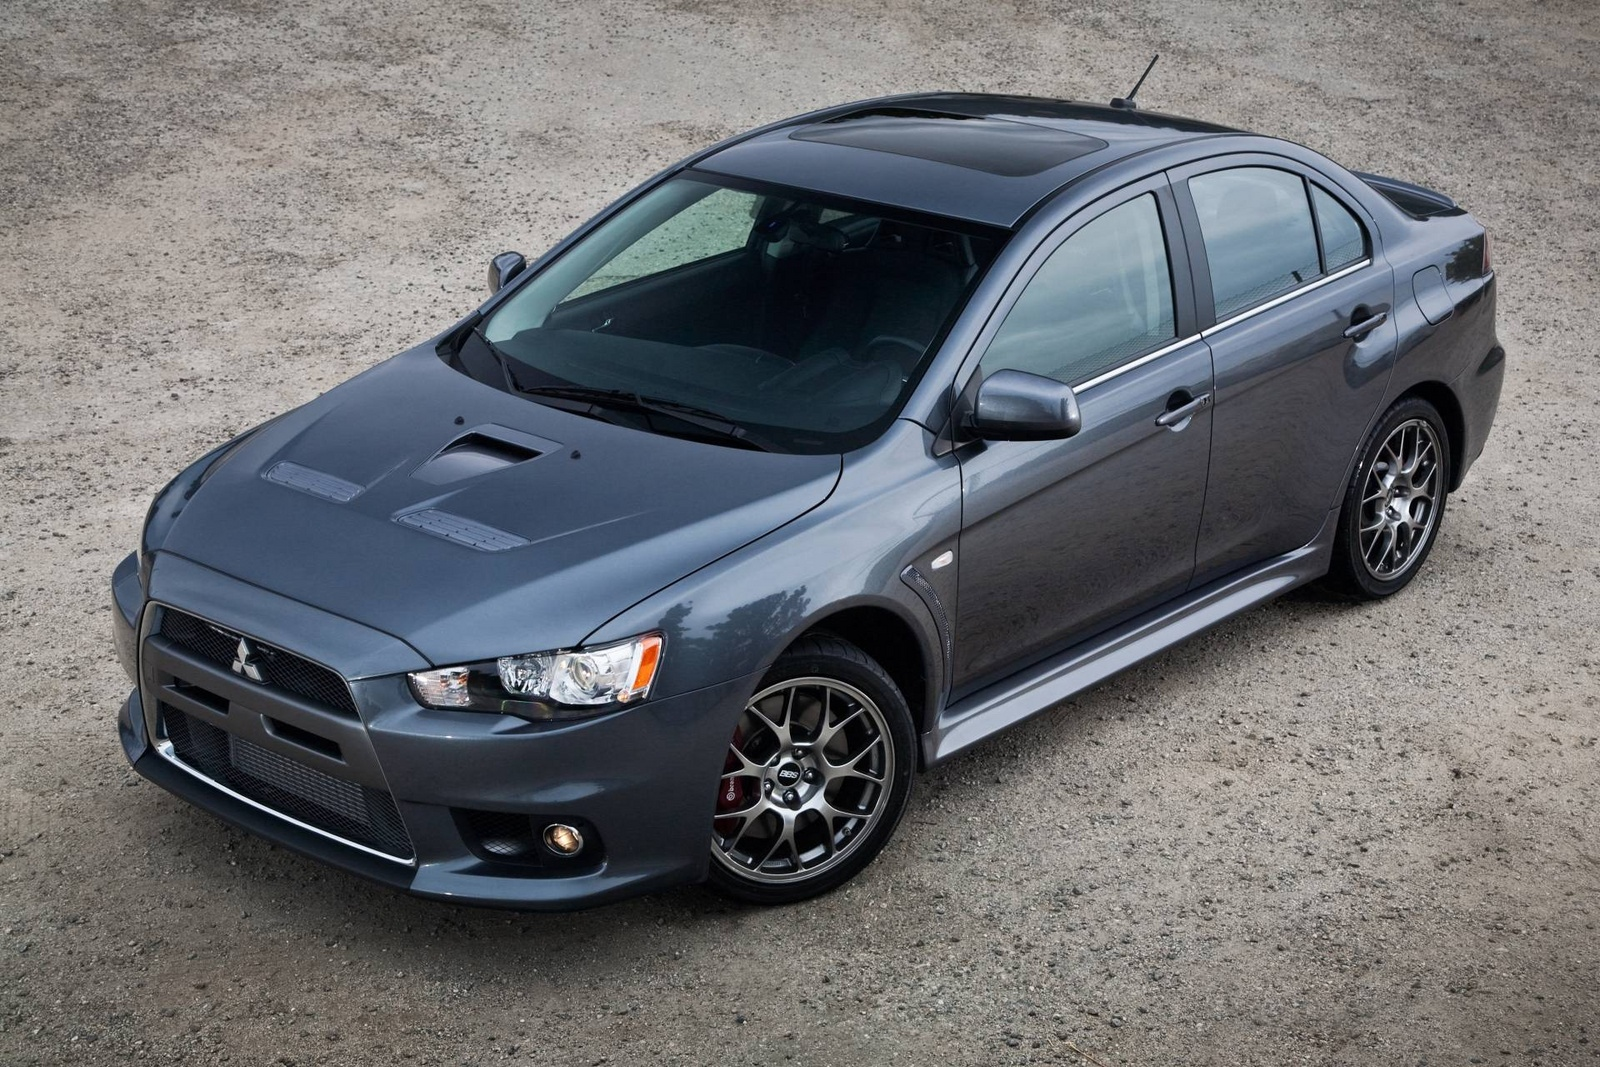 2013 Mitsubishi Lancer Evolution - Pictures - CarGurus